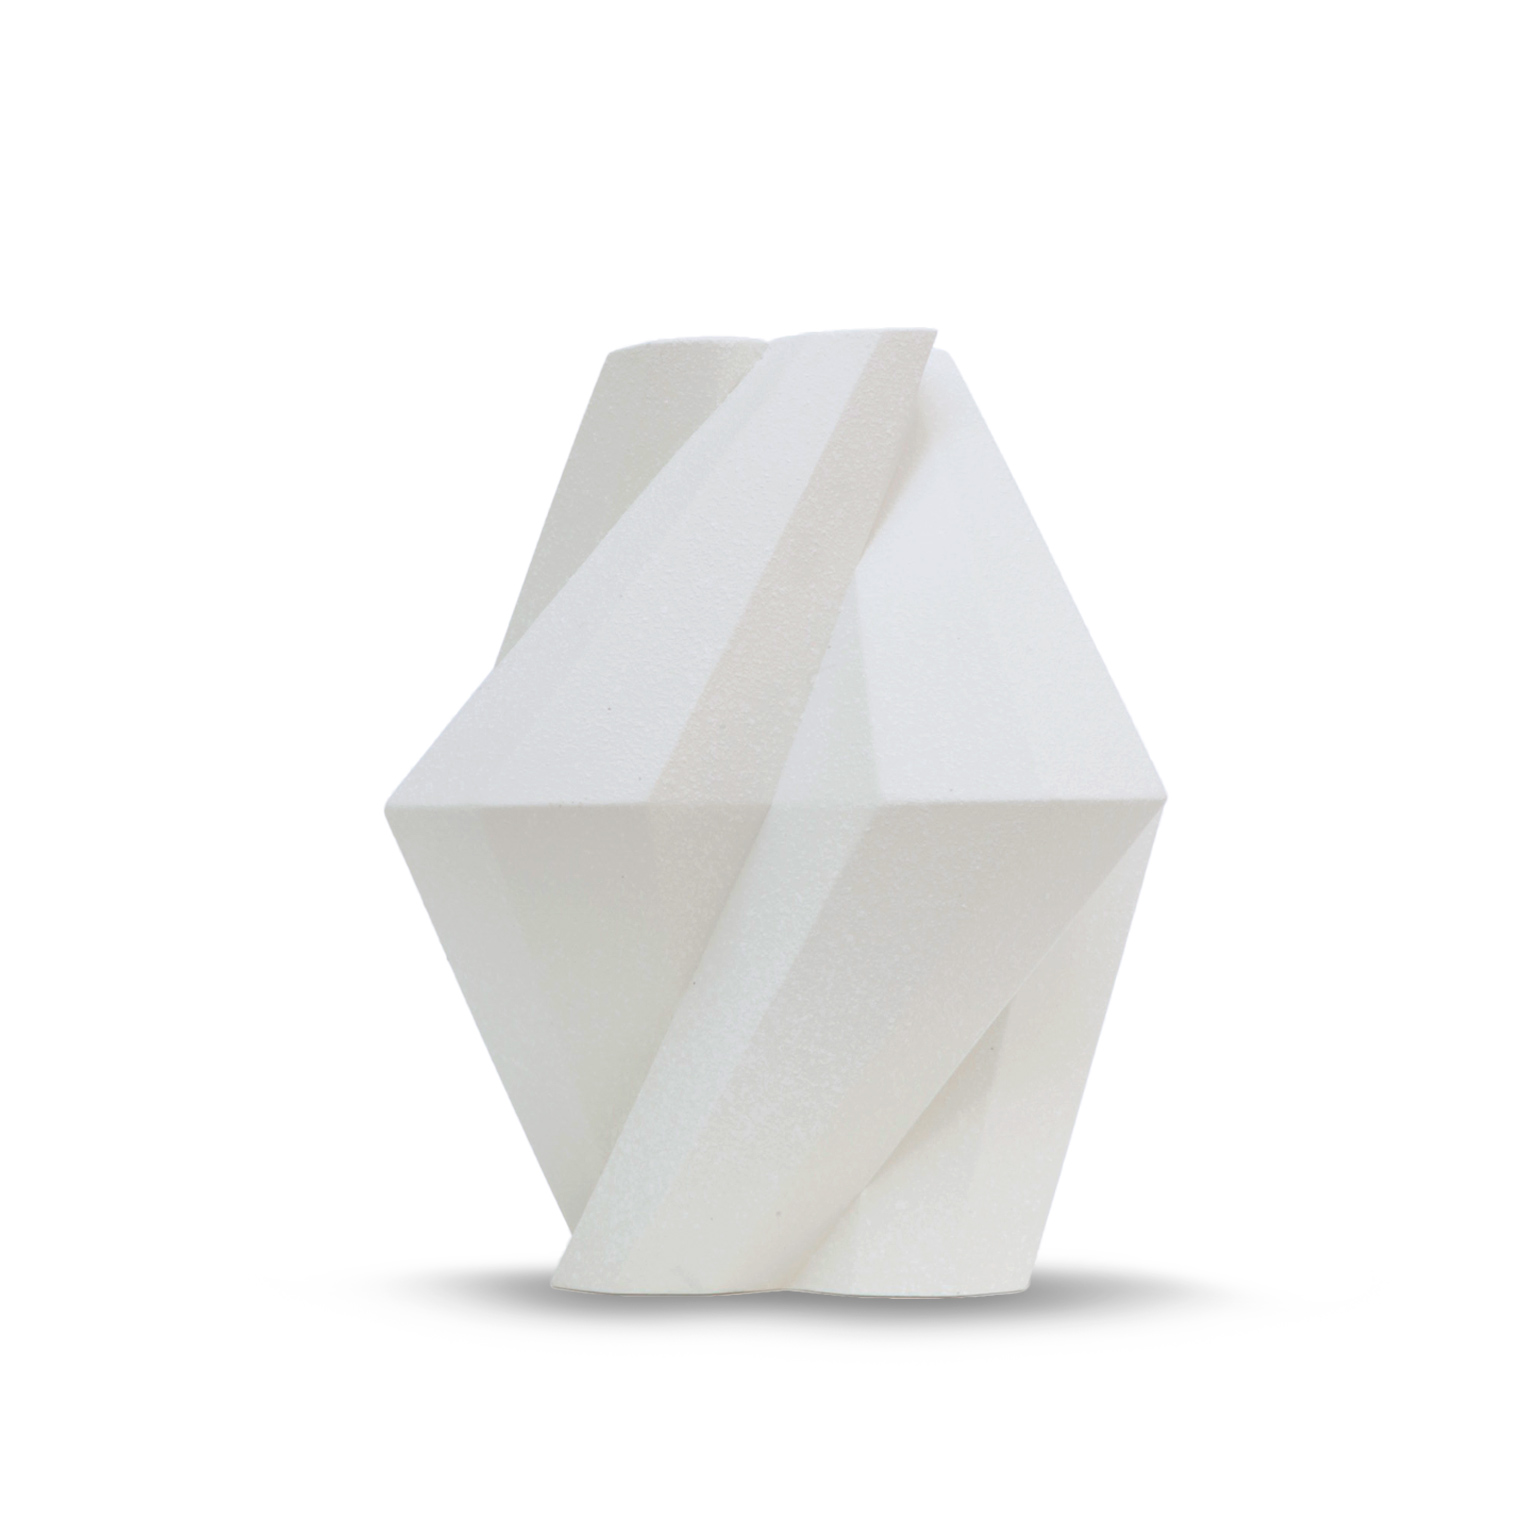 Fortress Pillar Vase White - <p>Designer Lara Bohinc explores the marriage of ancient and futuristic form in the new Fortress Vase range, which has created a more complex geometric and modern structure from the original inspiration of the octagonal towers at the Diocletian Palace in Croatia. The resulting hexagonal blocks interlock and embrace to allow the play of light and shade on the many surfaces and angles. There are four Fortress shapes: the larger Column and Castle (45cm height), the Pillar (30cm height) and the Tower vase (37cm height). These are hand made from ceramic in a small Italian artisanal workshop and come in three finishes: dark gold, bronze and speckled white.</p>    Matter of Stuff